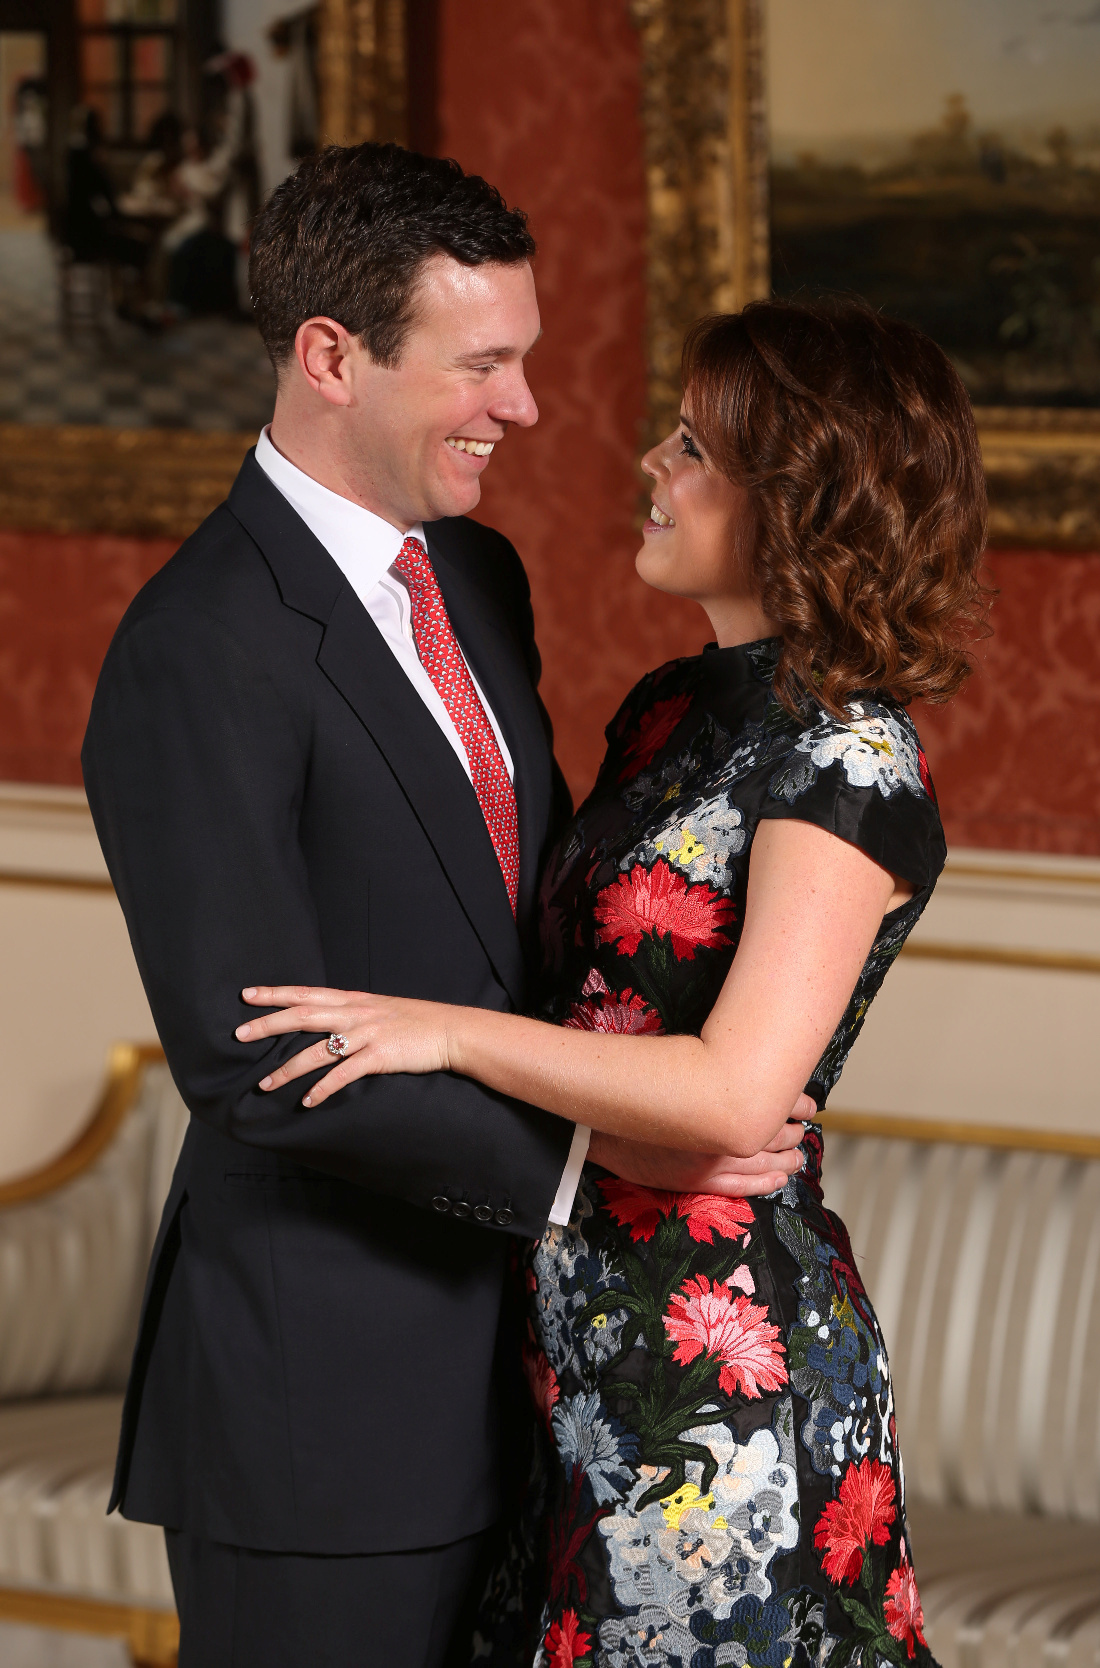 Britain's Princess Eugenie and Jack Brooksbank pose in the Picture Gallery after they announced their engagement, at Buckingham Palace, London January 22, 2018. REUTERS/Jonathan Brady/Pool - RC1D9187F800